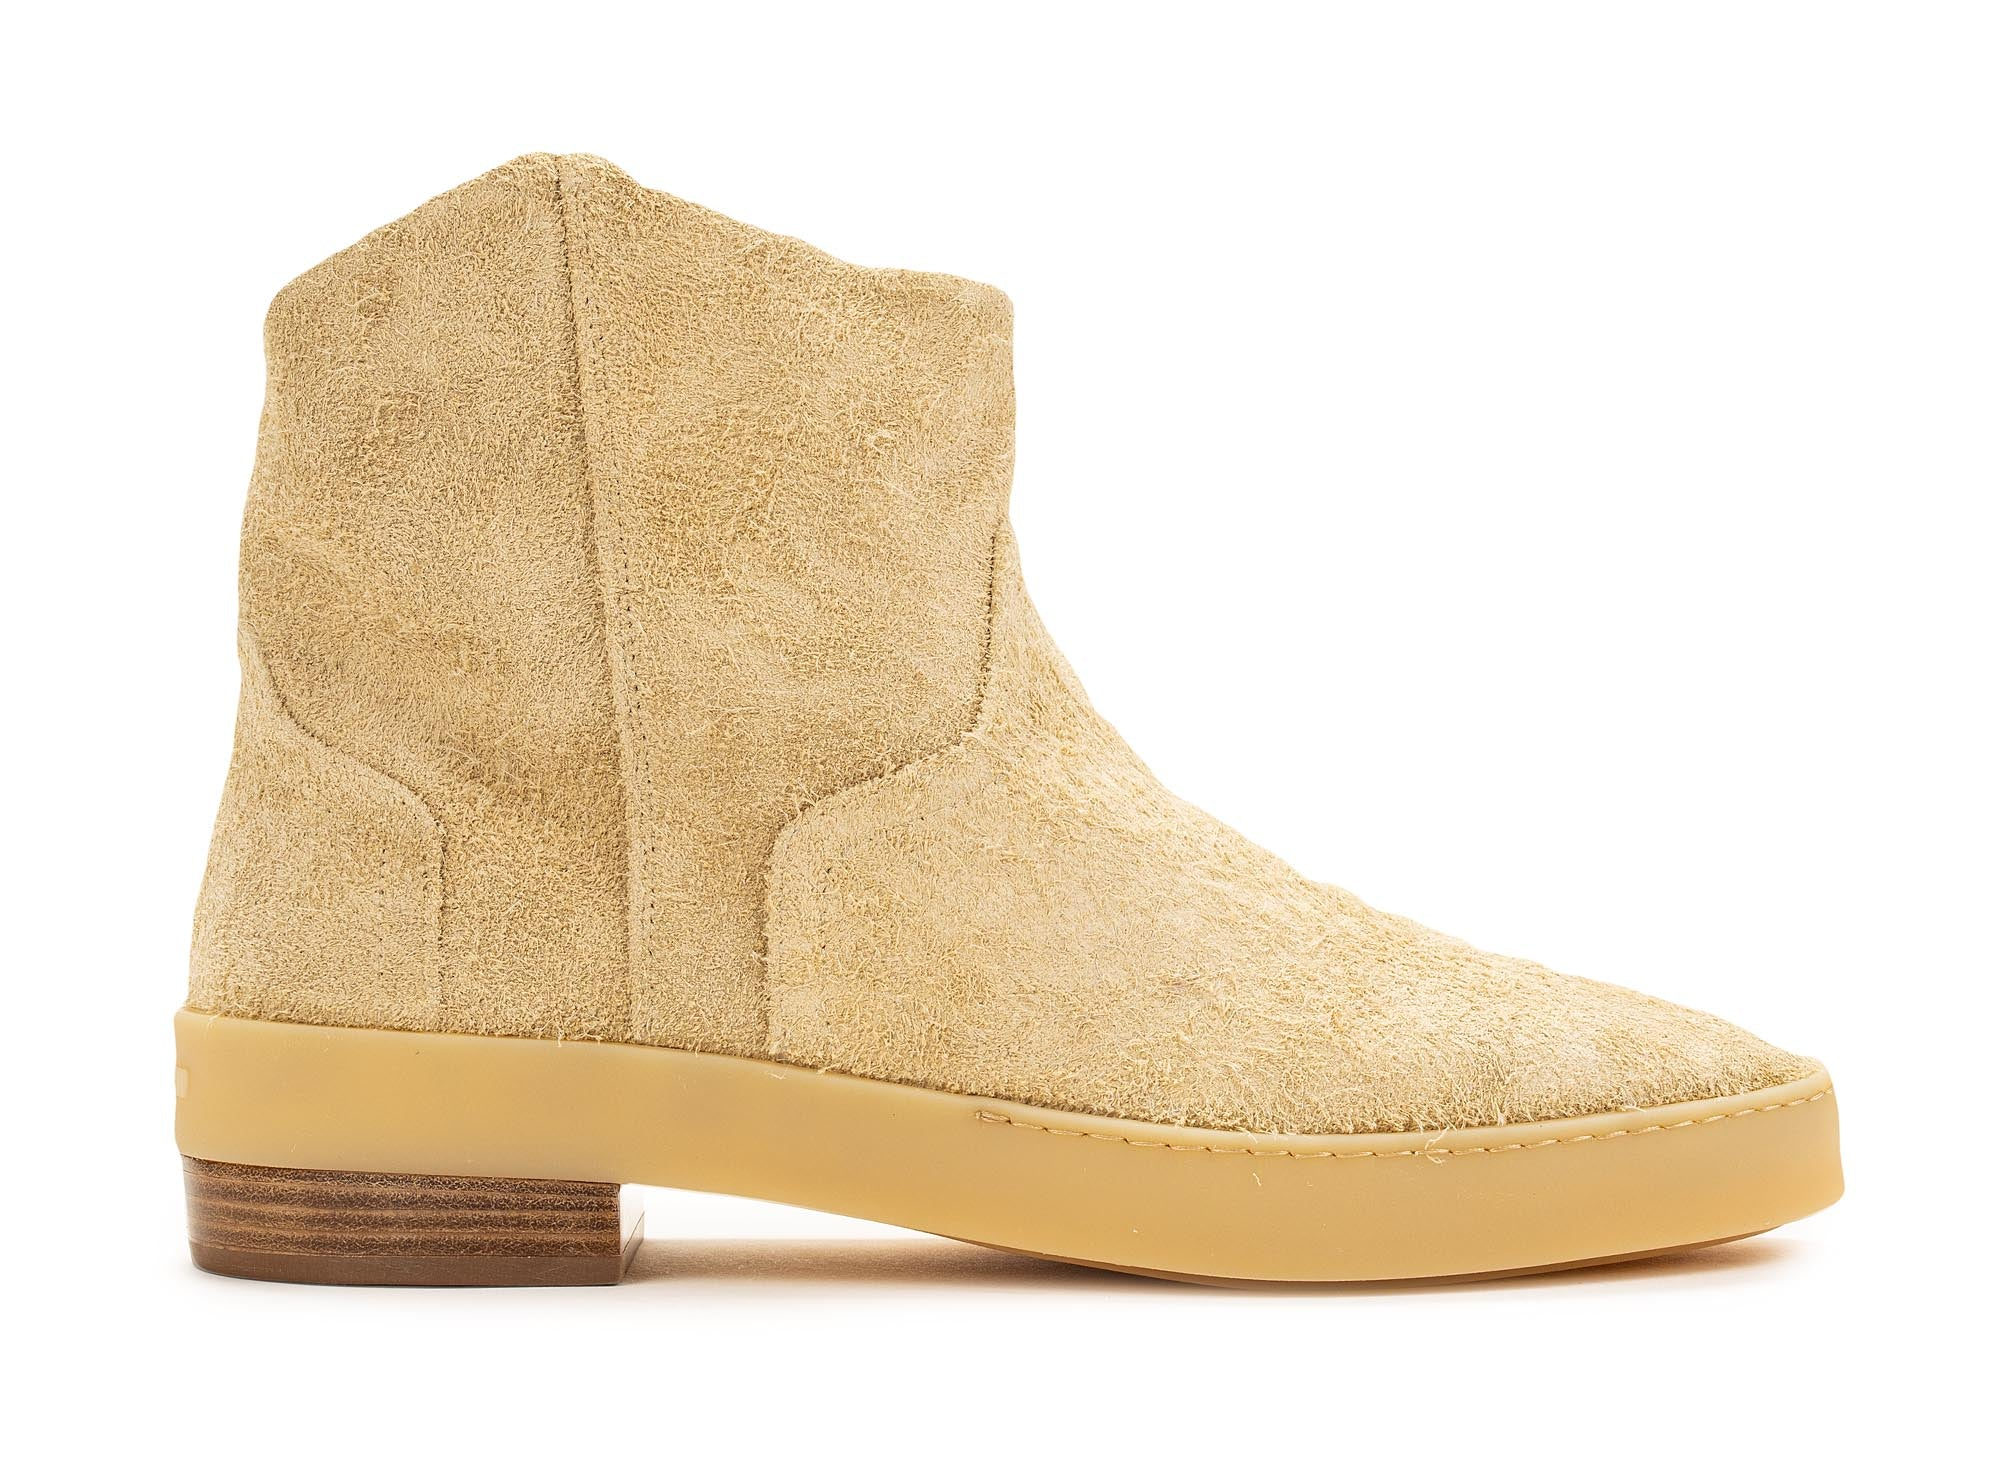 Fear of God Western Santa Fe Suede Boot 'Sand'